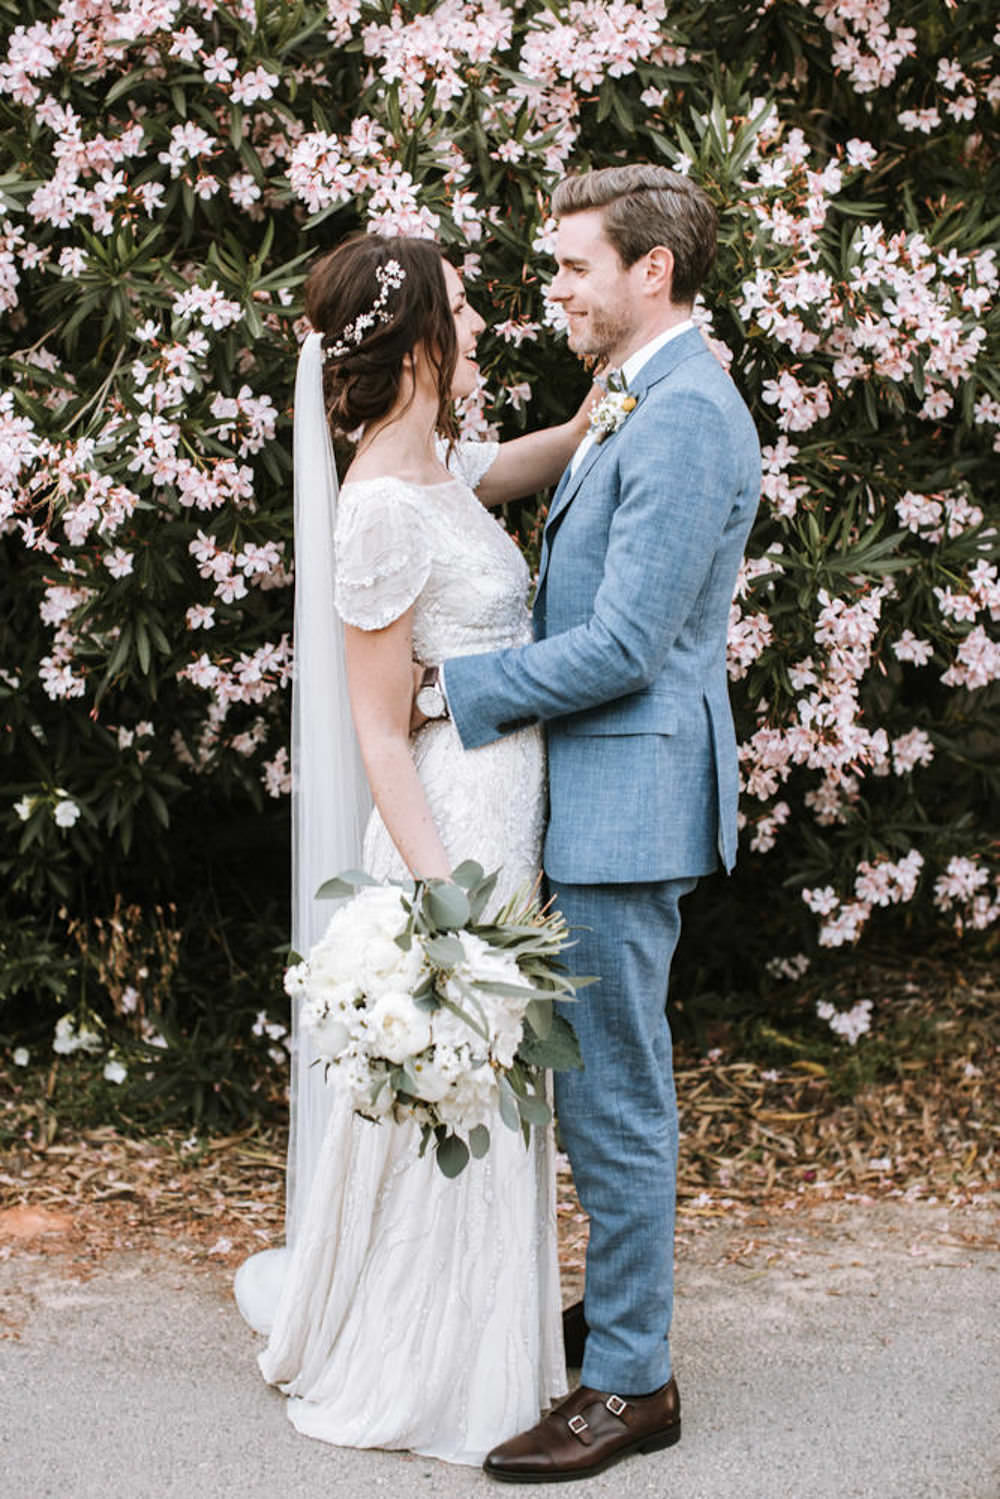 Bride Bridal Jenny Packham Beaded Short Sleeve Dress Gown Blue Suit Groom Hairpiece Vine Veil Portugal Destination Wedding Ana Parker Photography